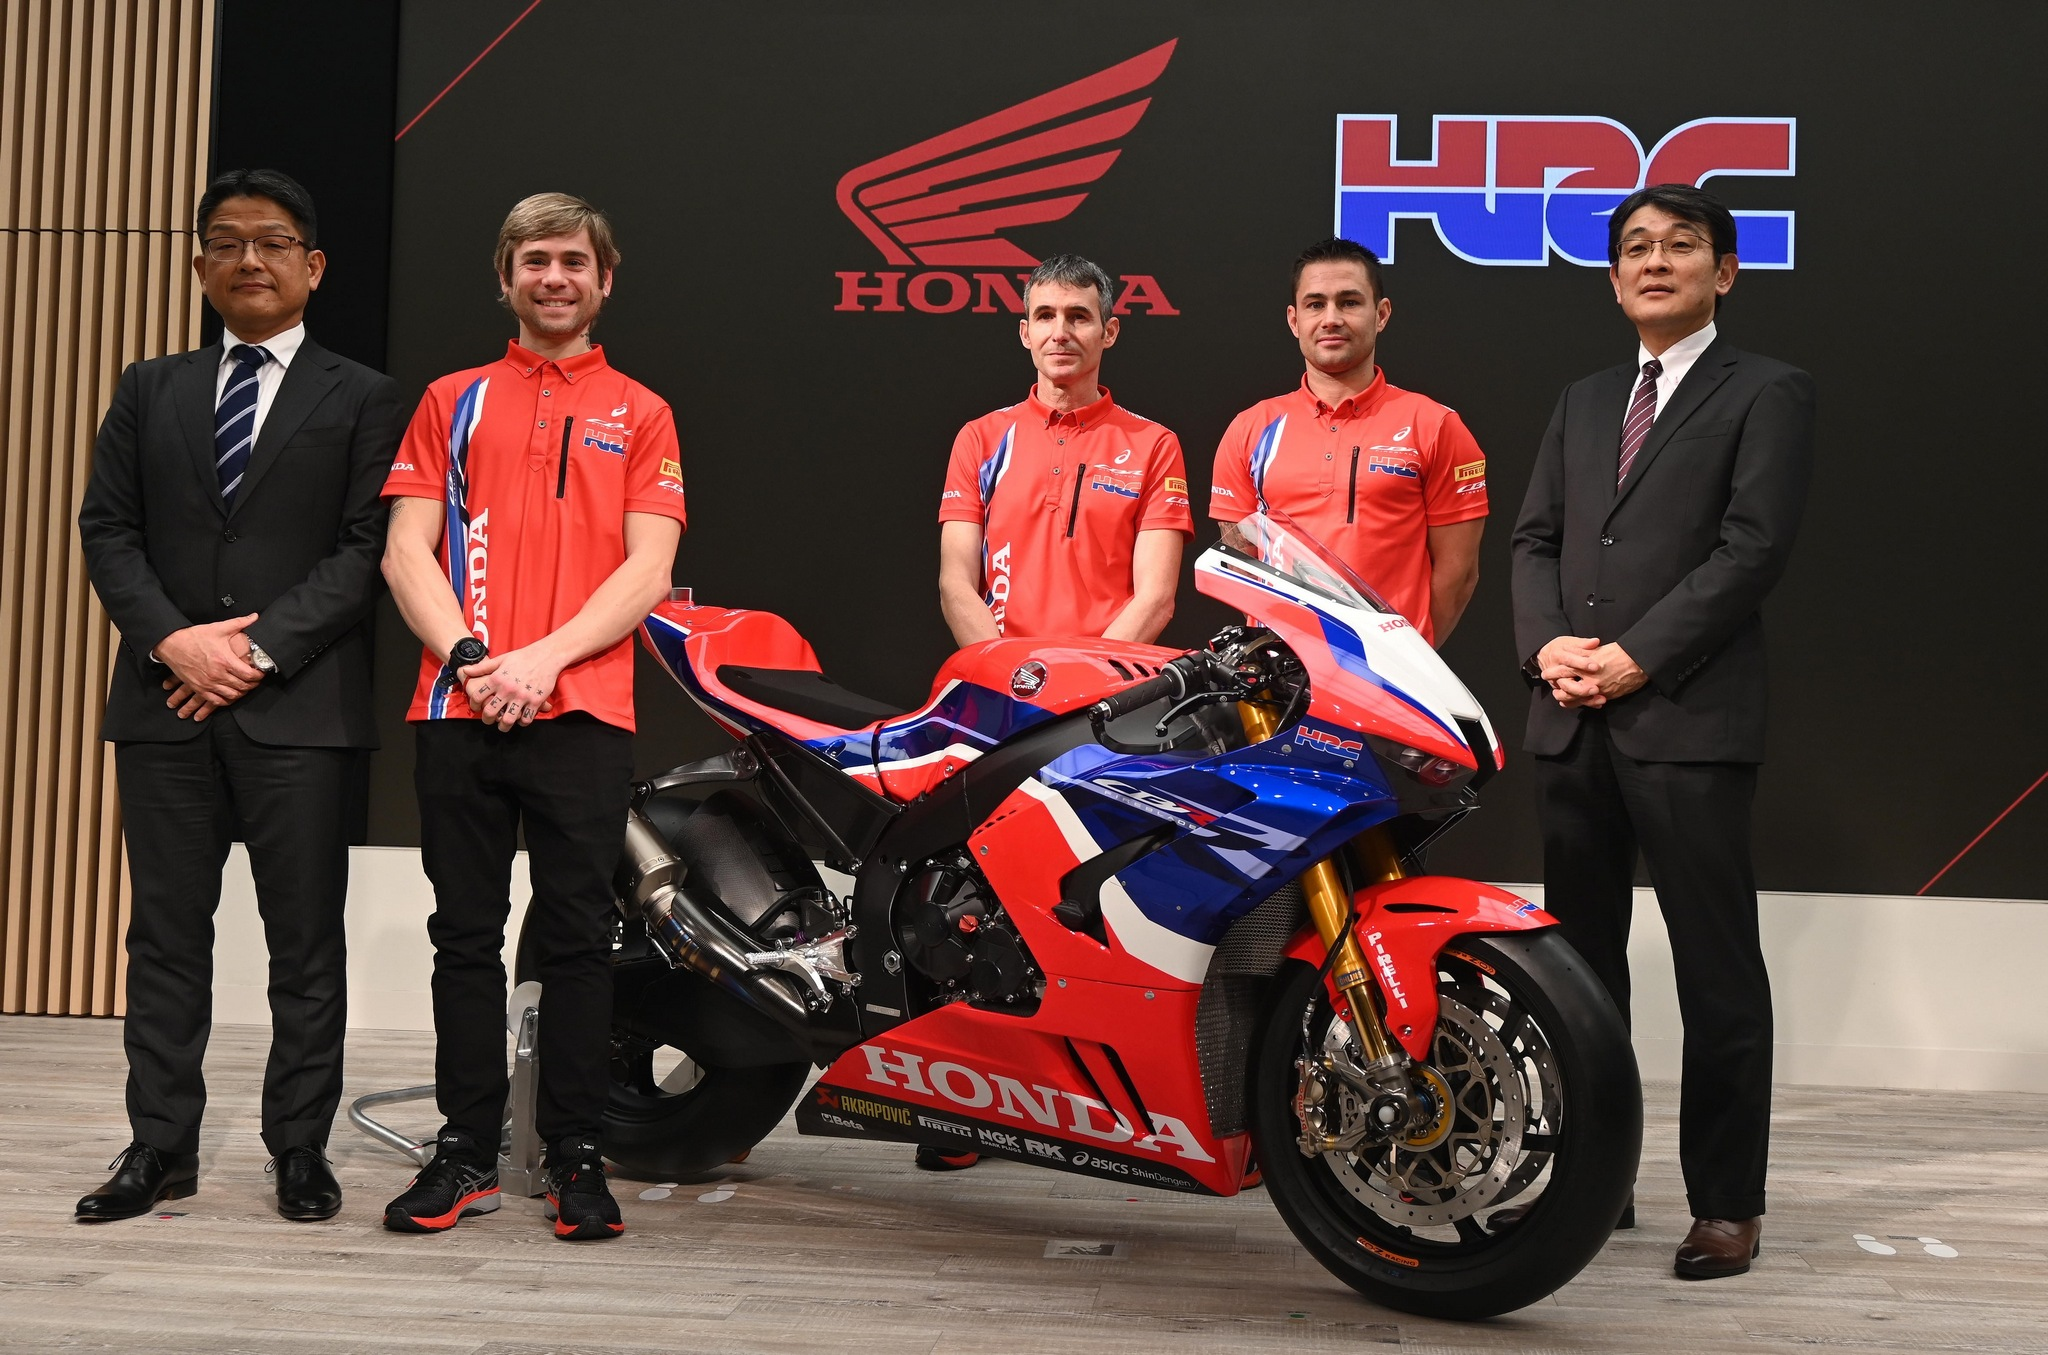 honda worldsbk team 2020 presentation 003